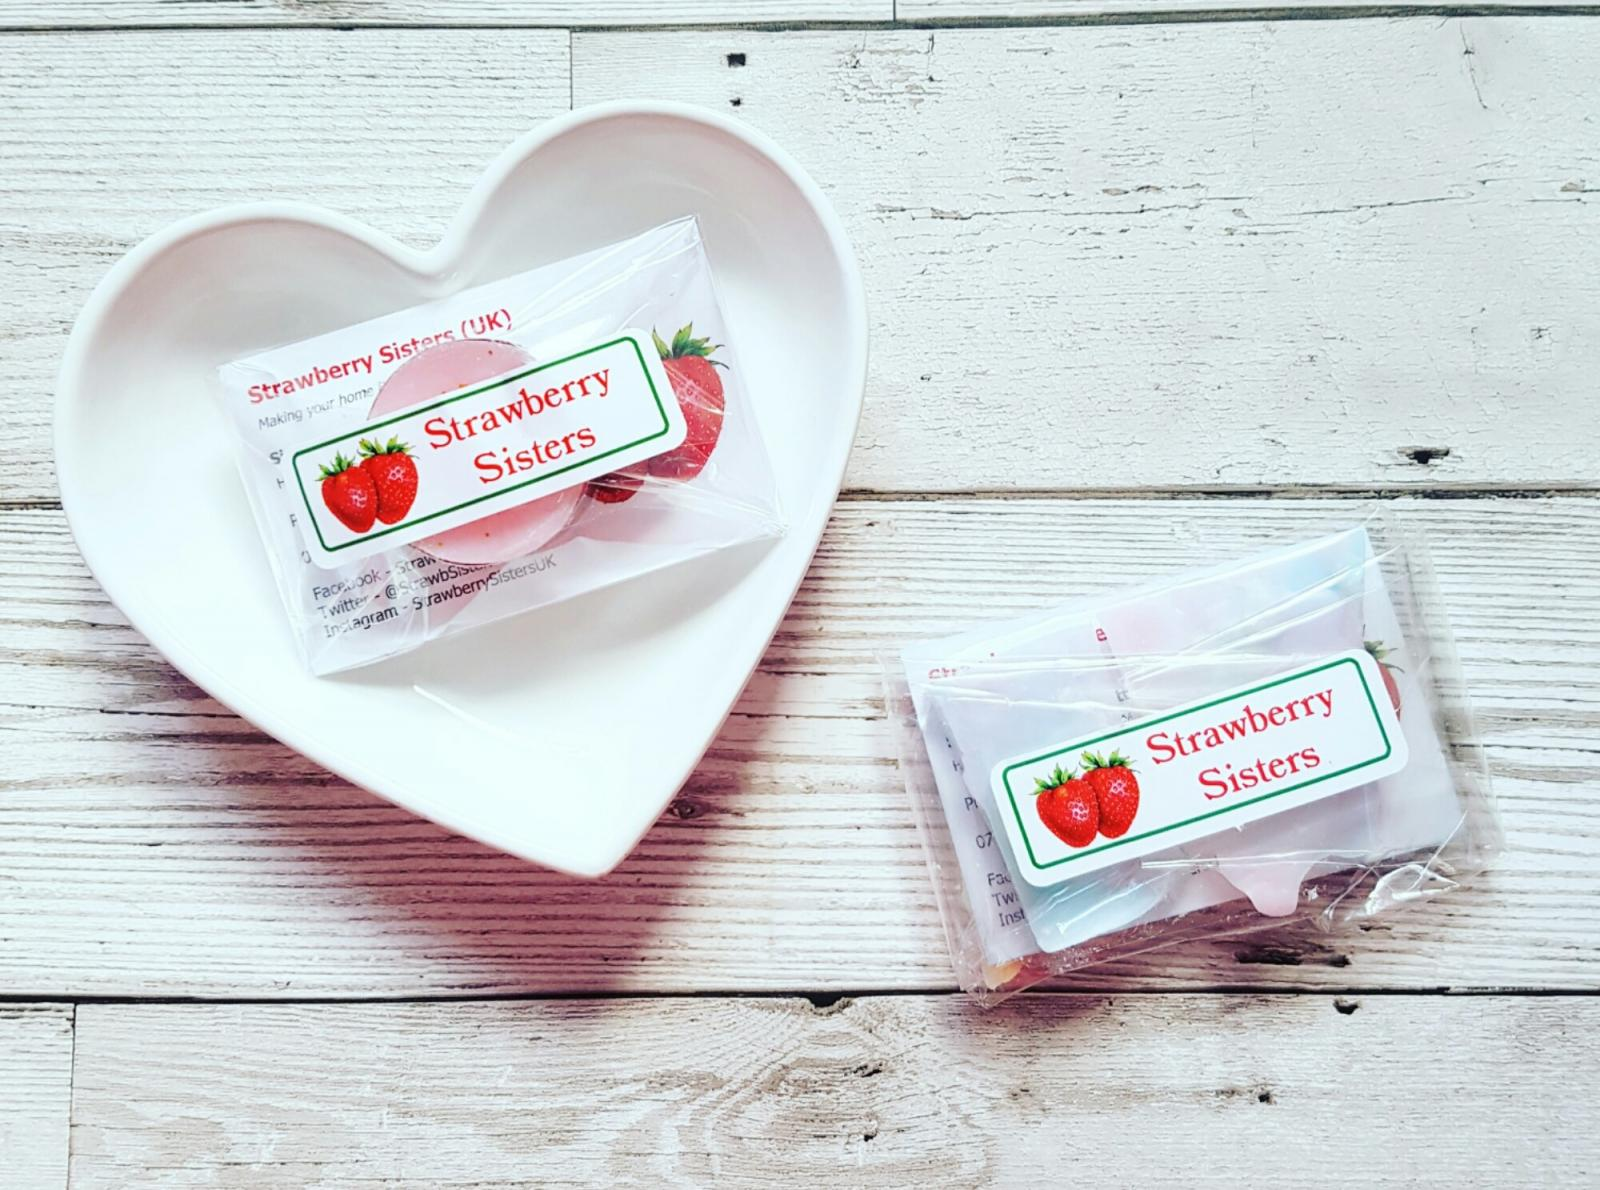 Strawberry Sisters Candles Wax Brittle